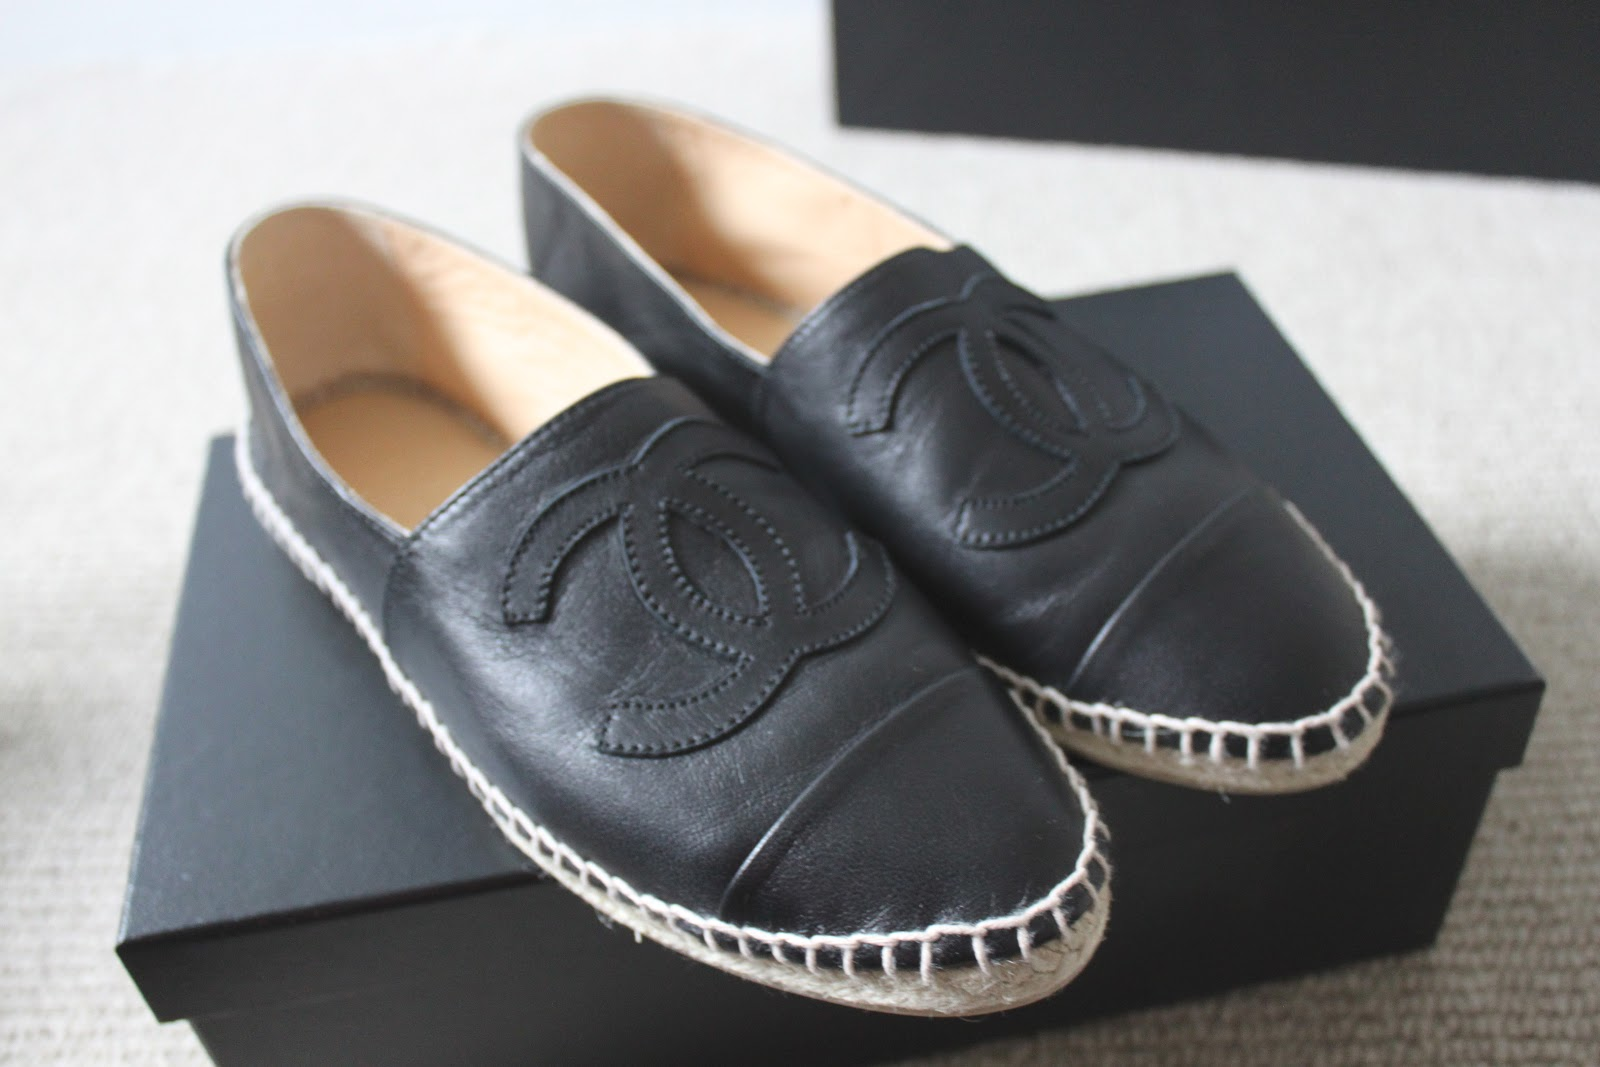 Chanel Leather Espadrilles Flats Shoes